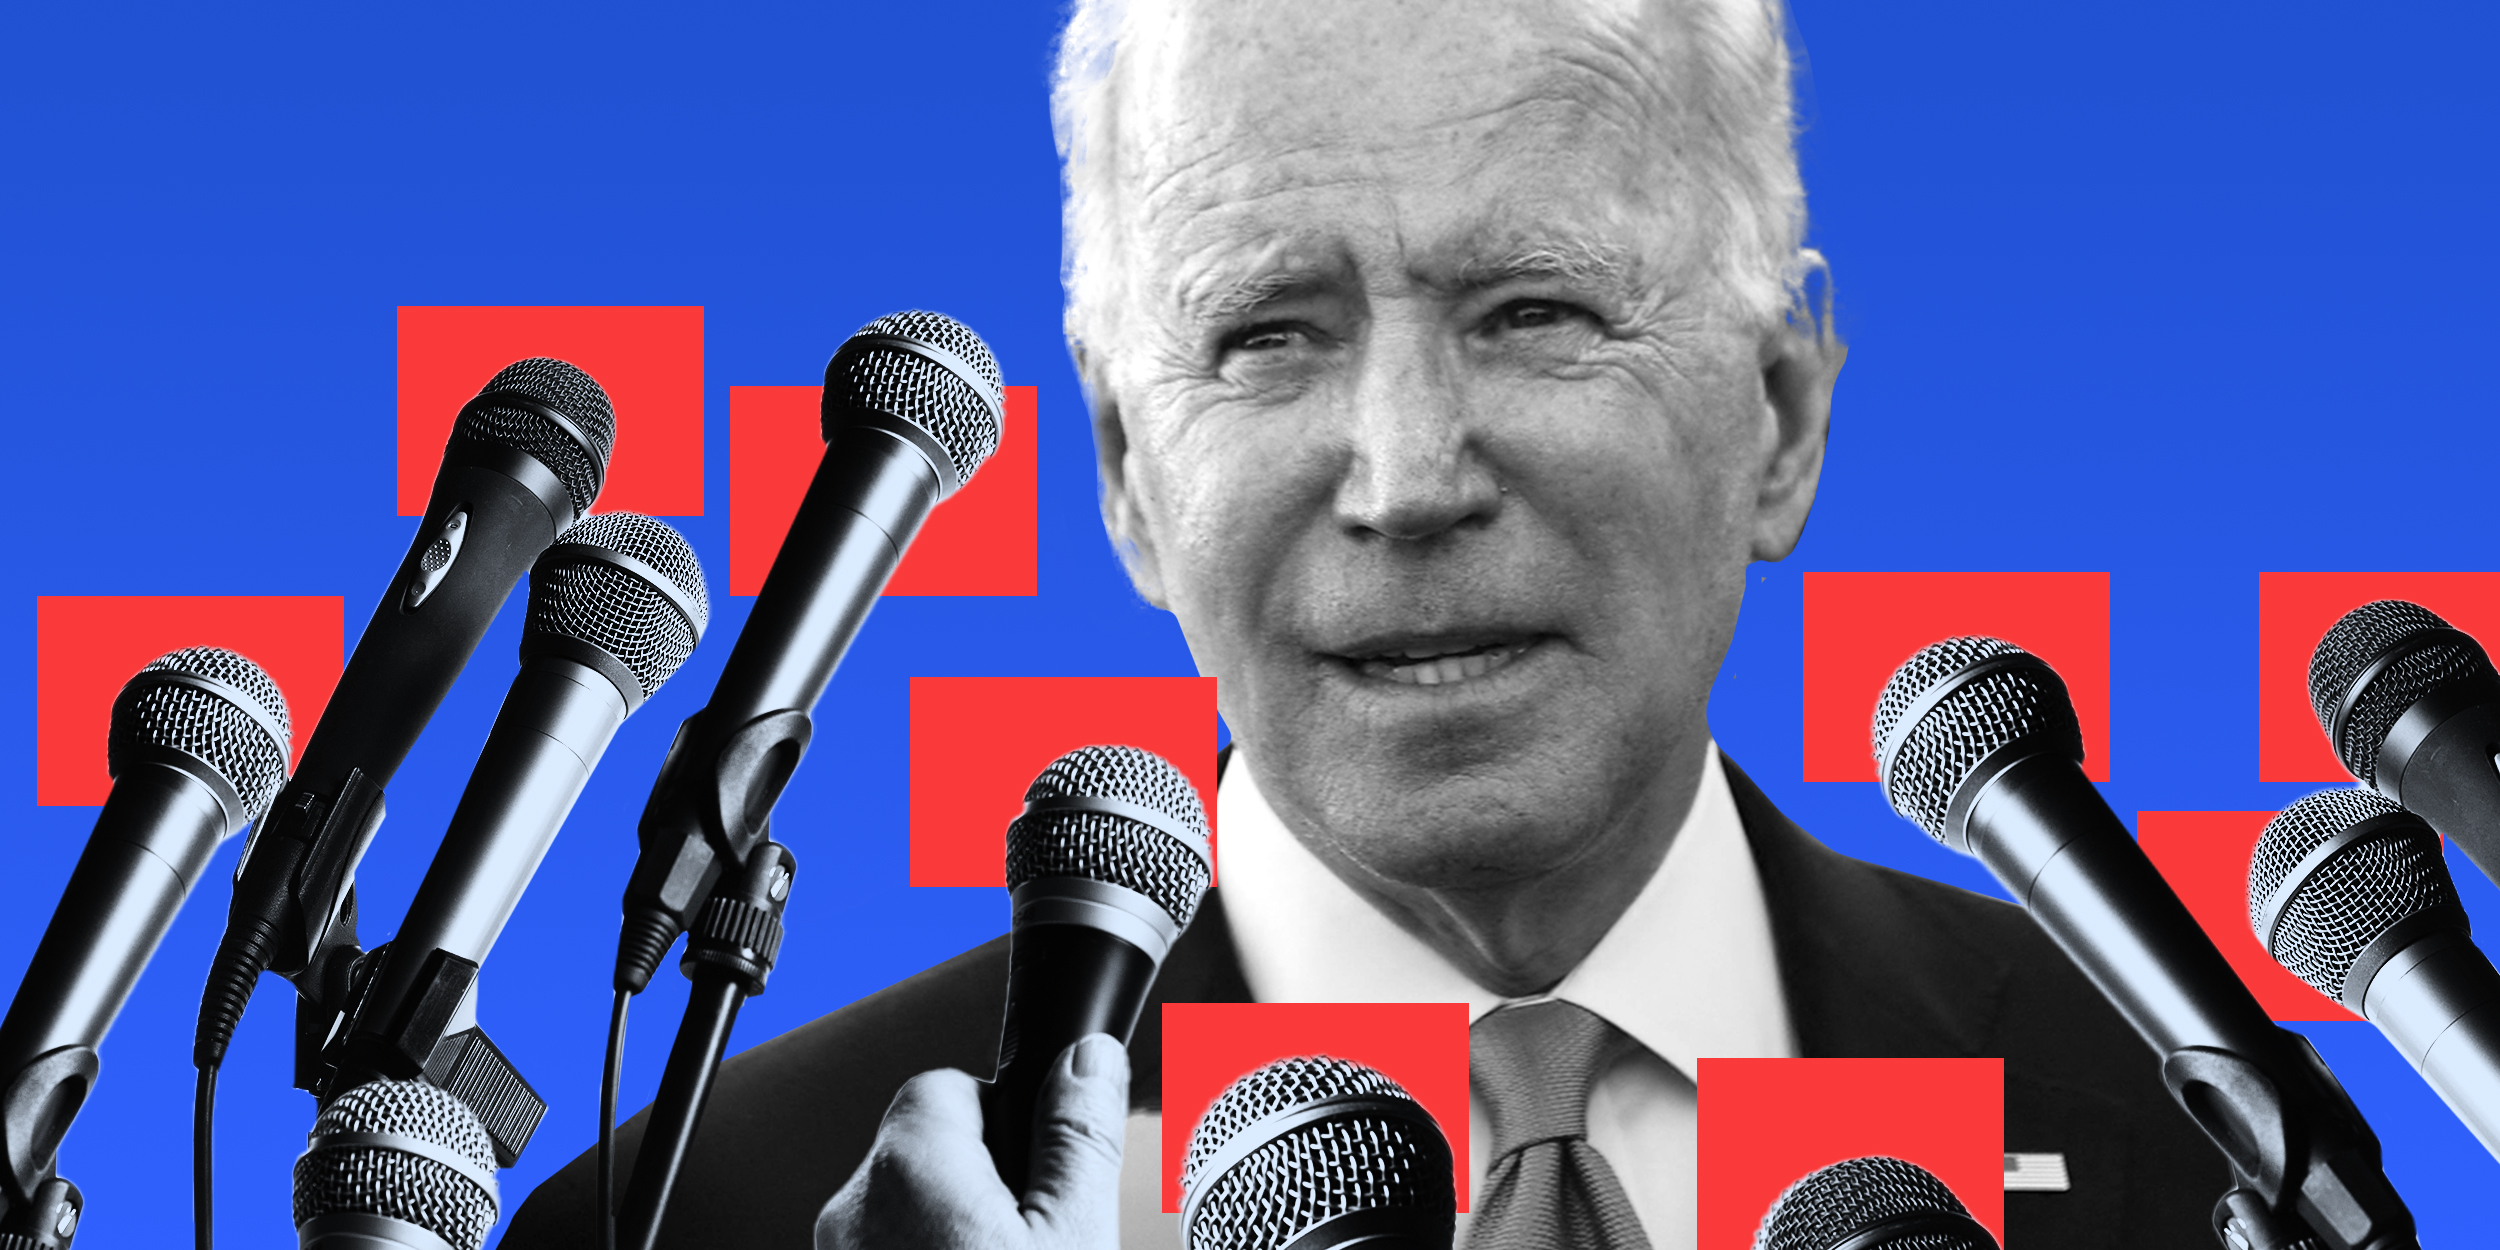 Biden, Trump, and Putin: Three very different reactions to being seen